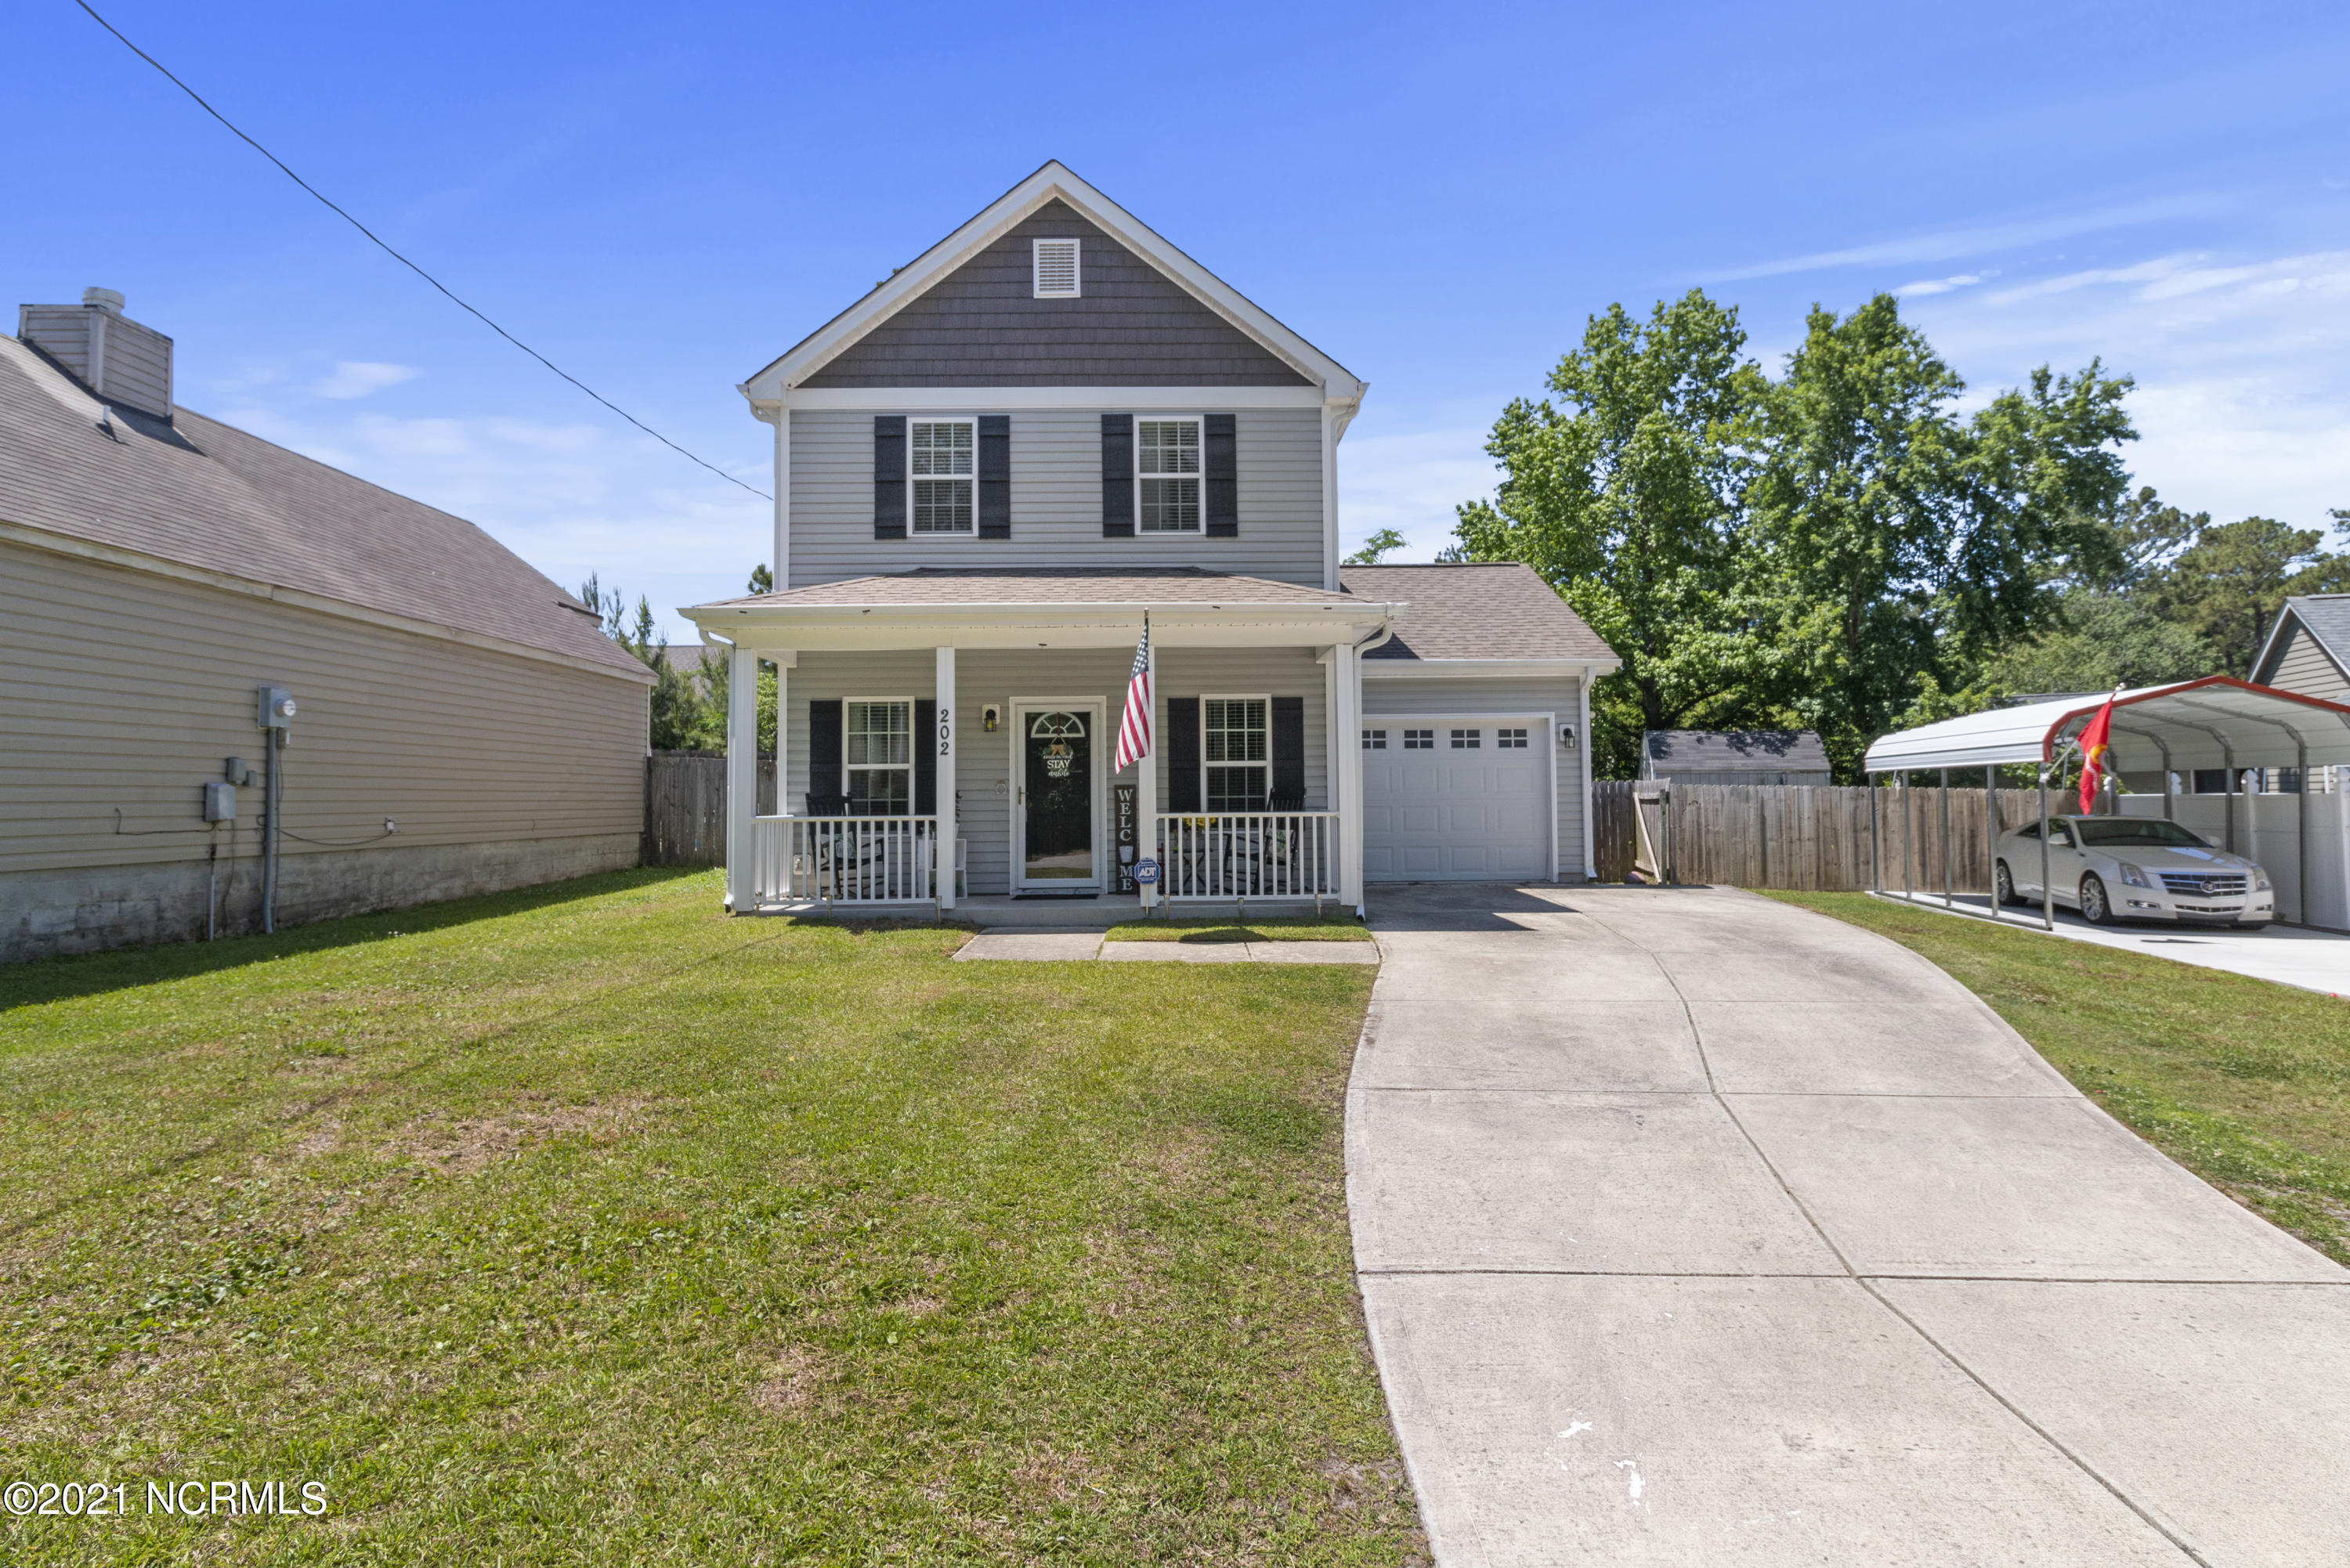 Previous buyer's financing fell through so we are back on the market! Welcome home to 202 Hemlock Drive! Upon entering, you're sure to fall in the love with the open concept, perfect for entertaining! This home is sure to amaze! Call today to schedule your personal tour! Don't miss out on this lovely home.